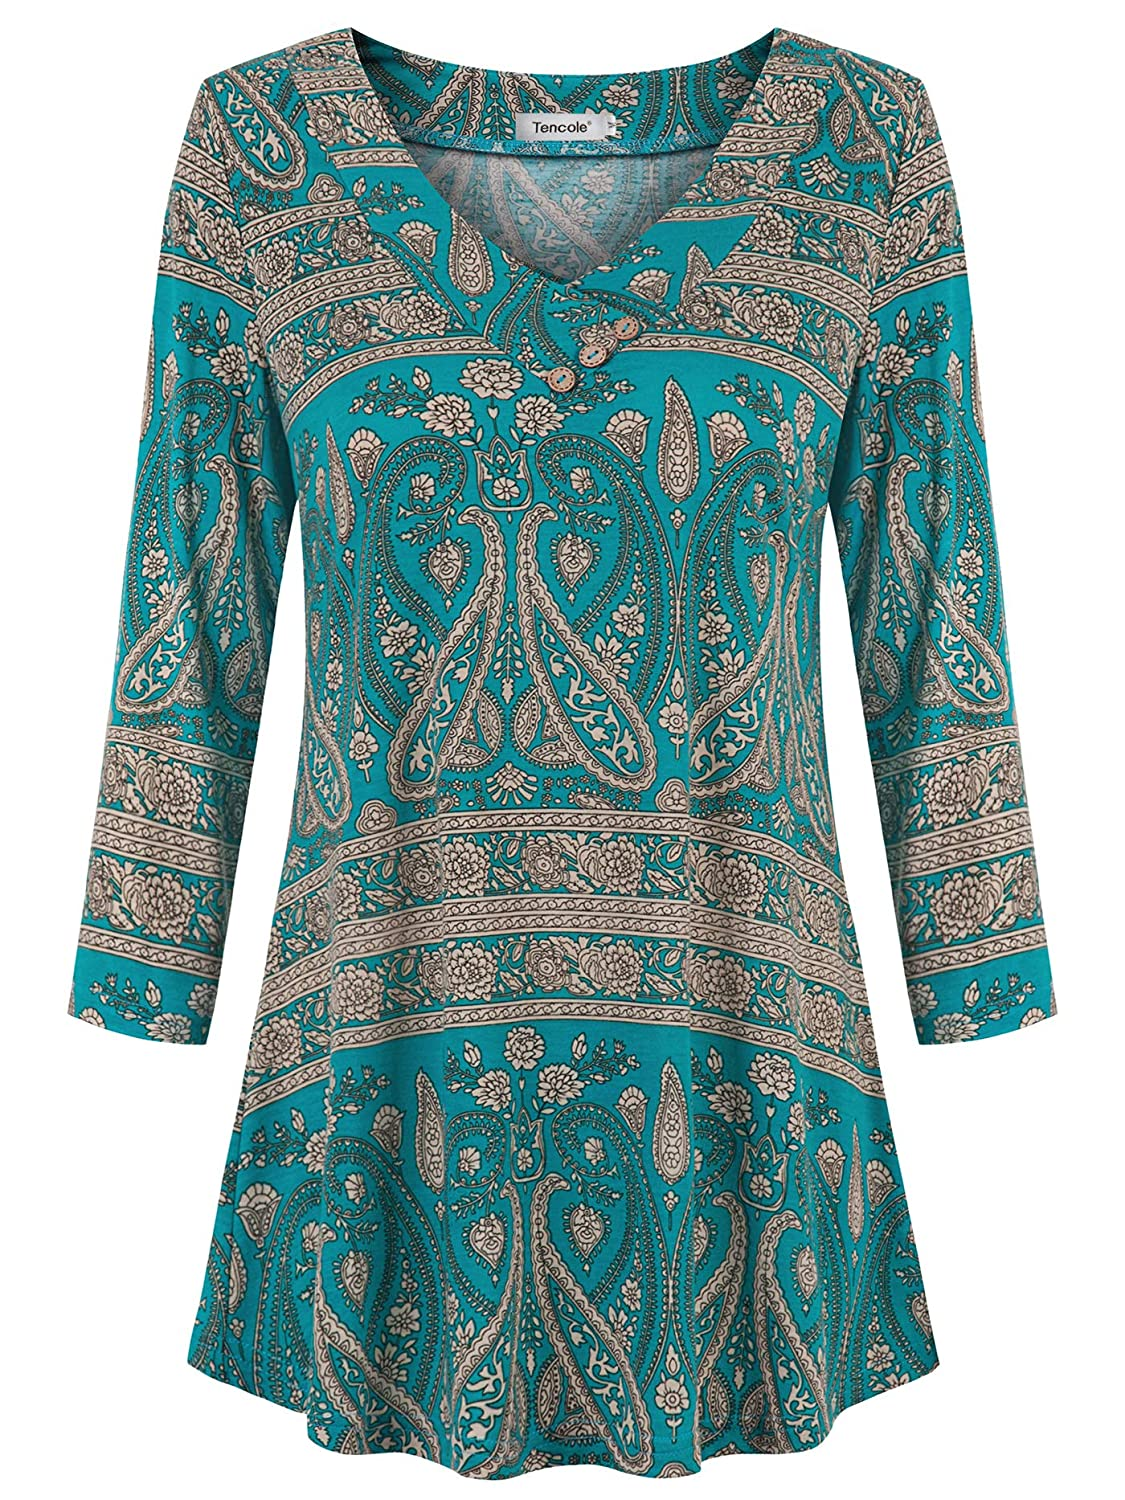 Tencole Womens 3 4 Sleeve V Neck Casual Tops Dressy Floral Buttons Tunic Blouse